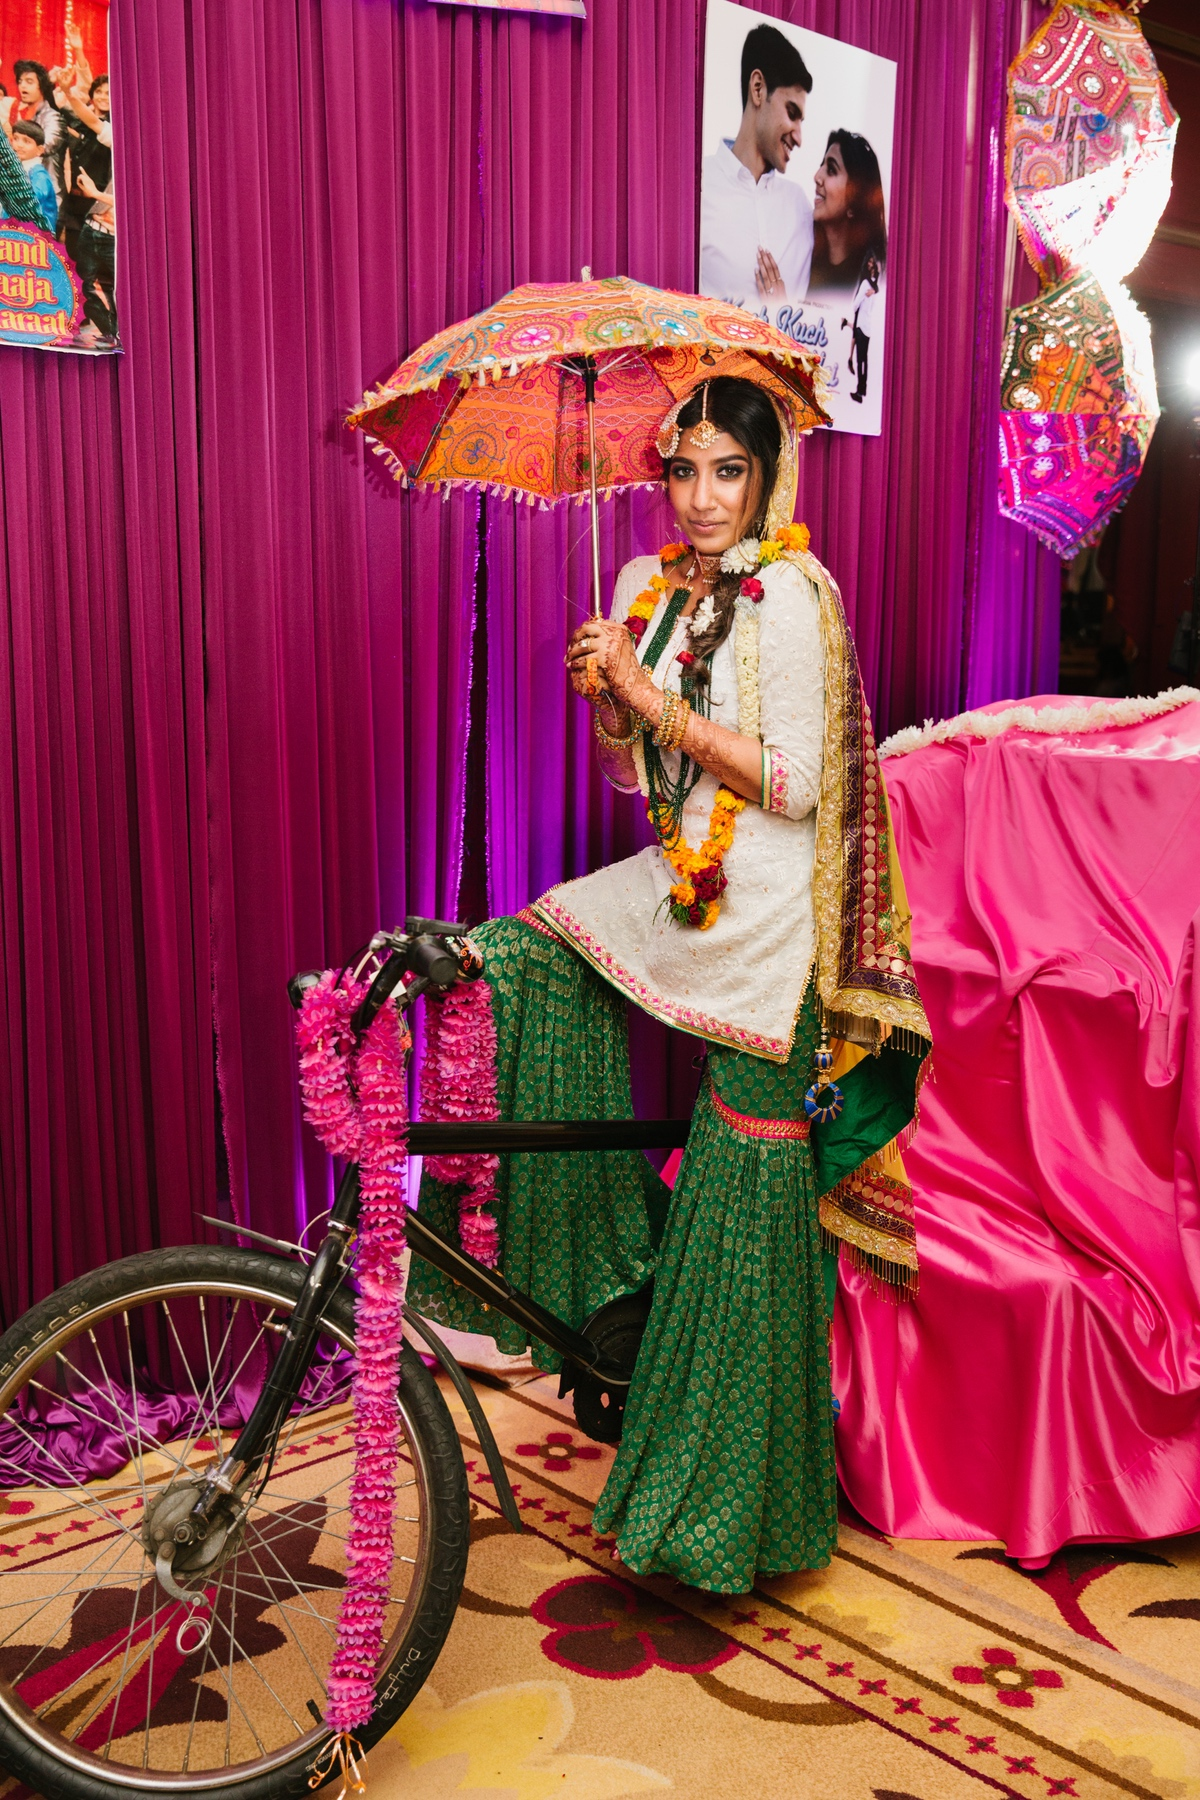 Le Cape Weddings - South Asian Wedding Chicago -   -9819.jpg